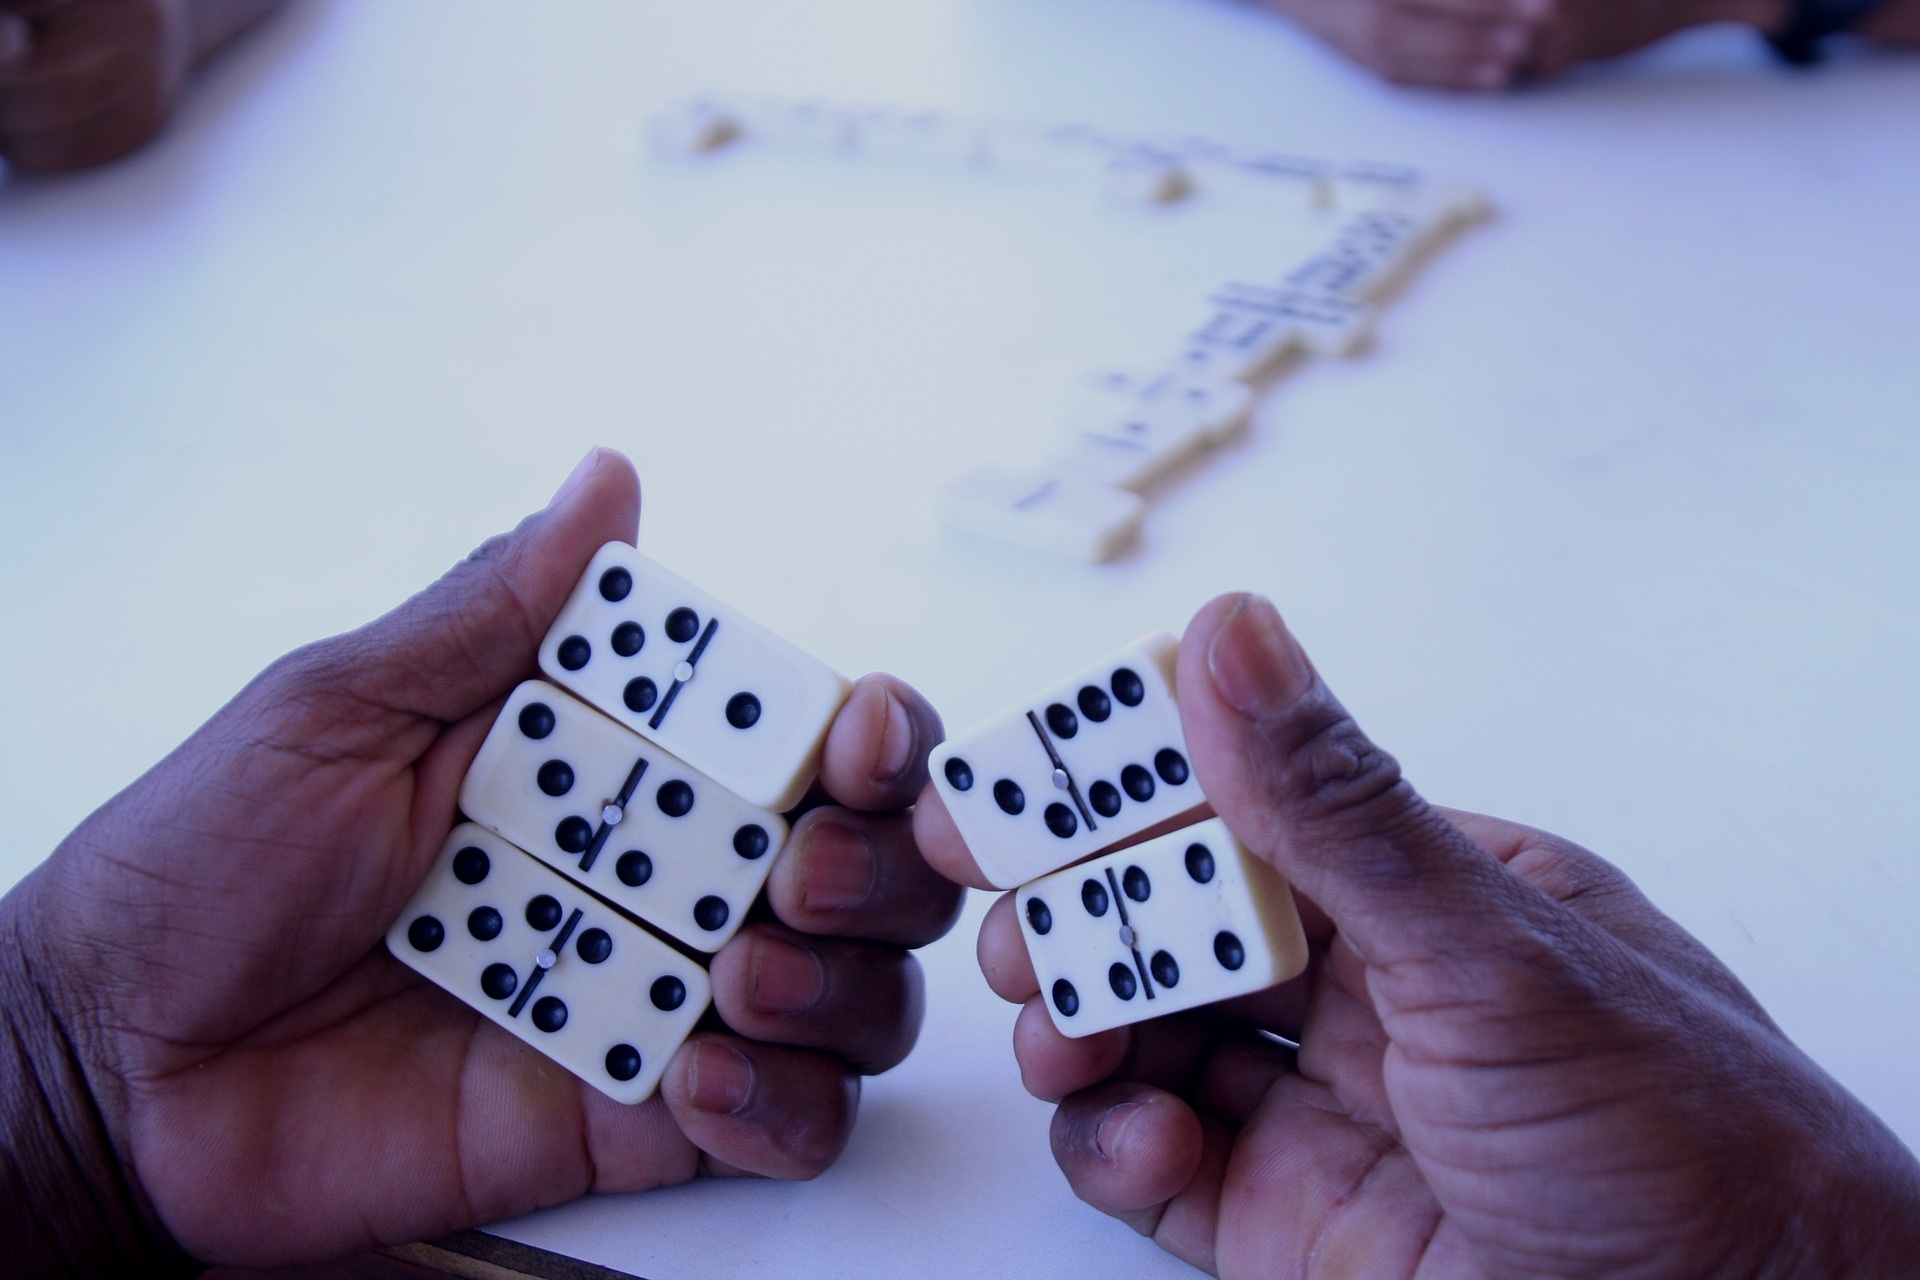 ORGANIZE A DOMINOES TOURNAMENT -